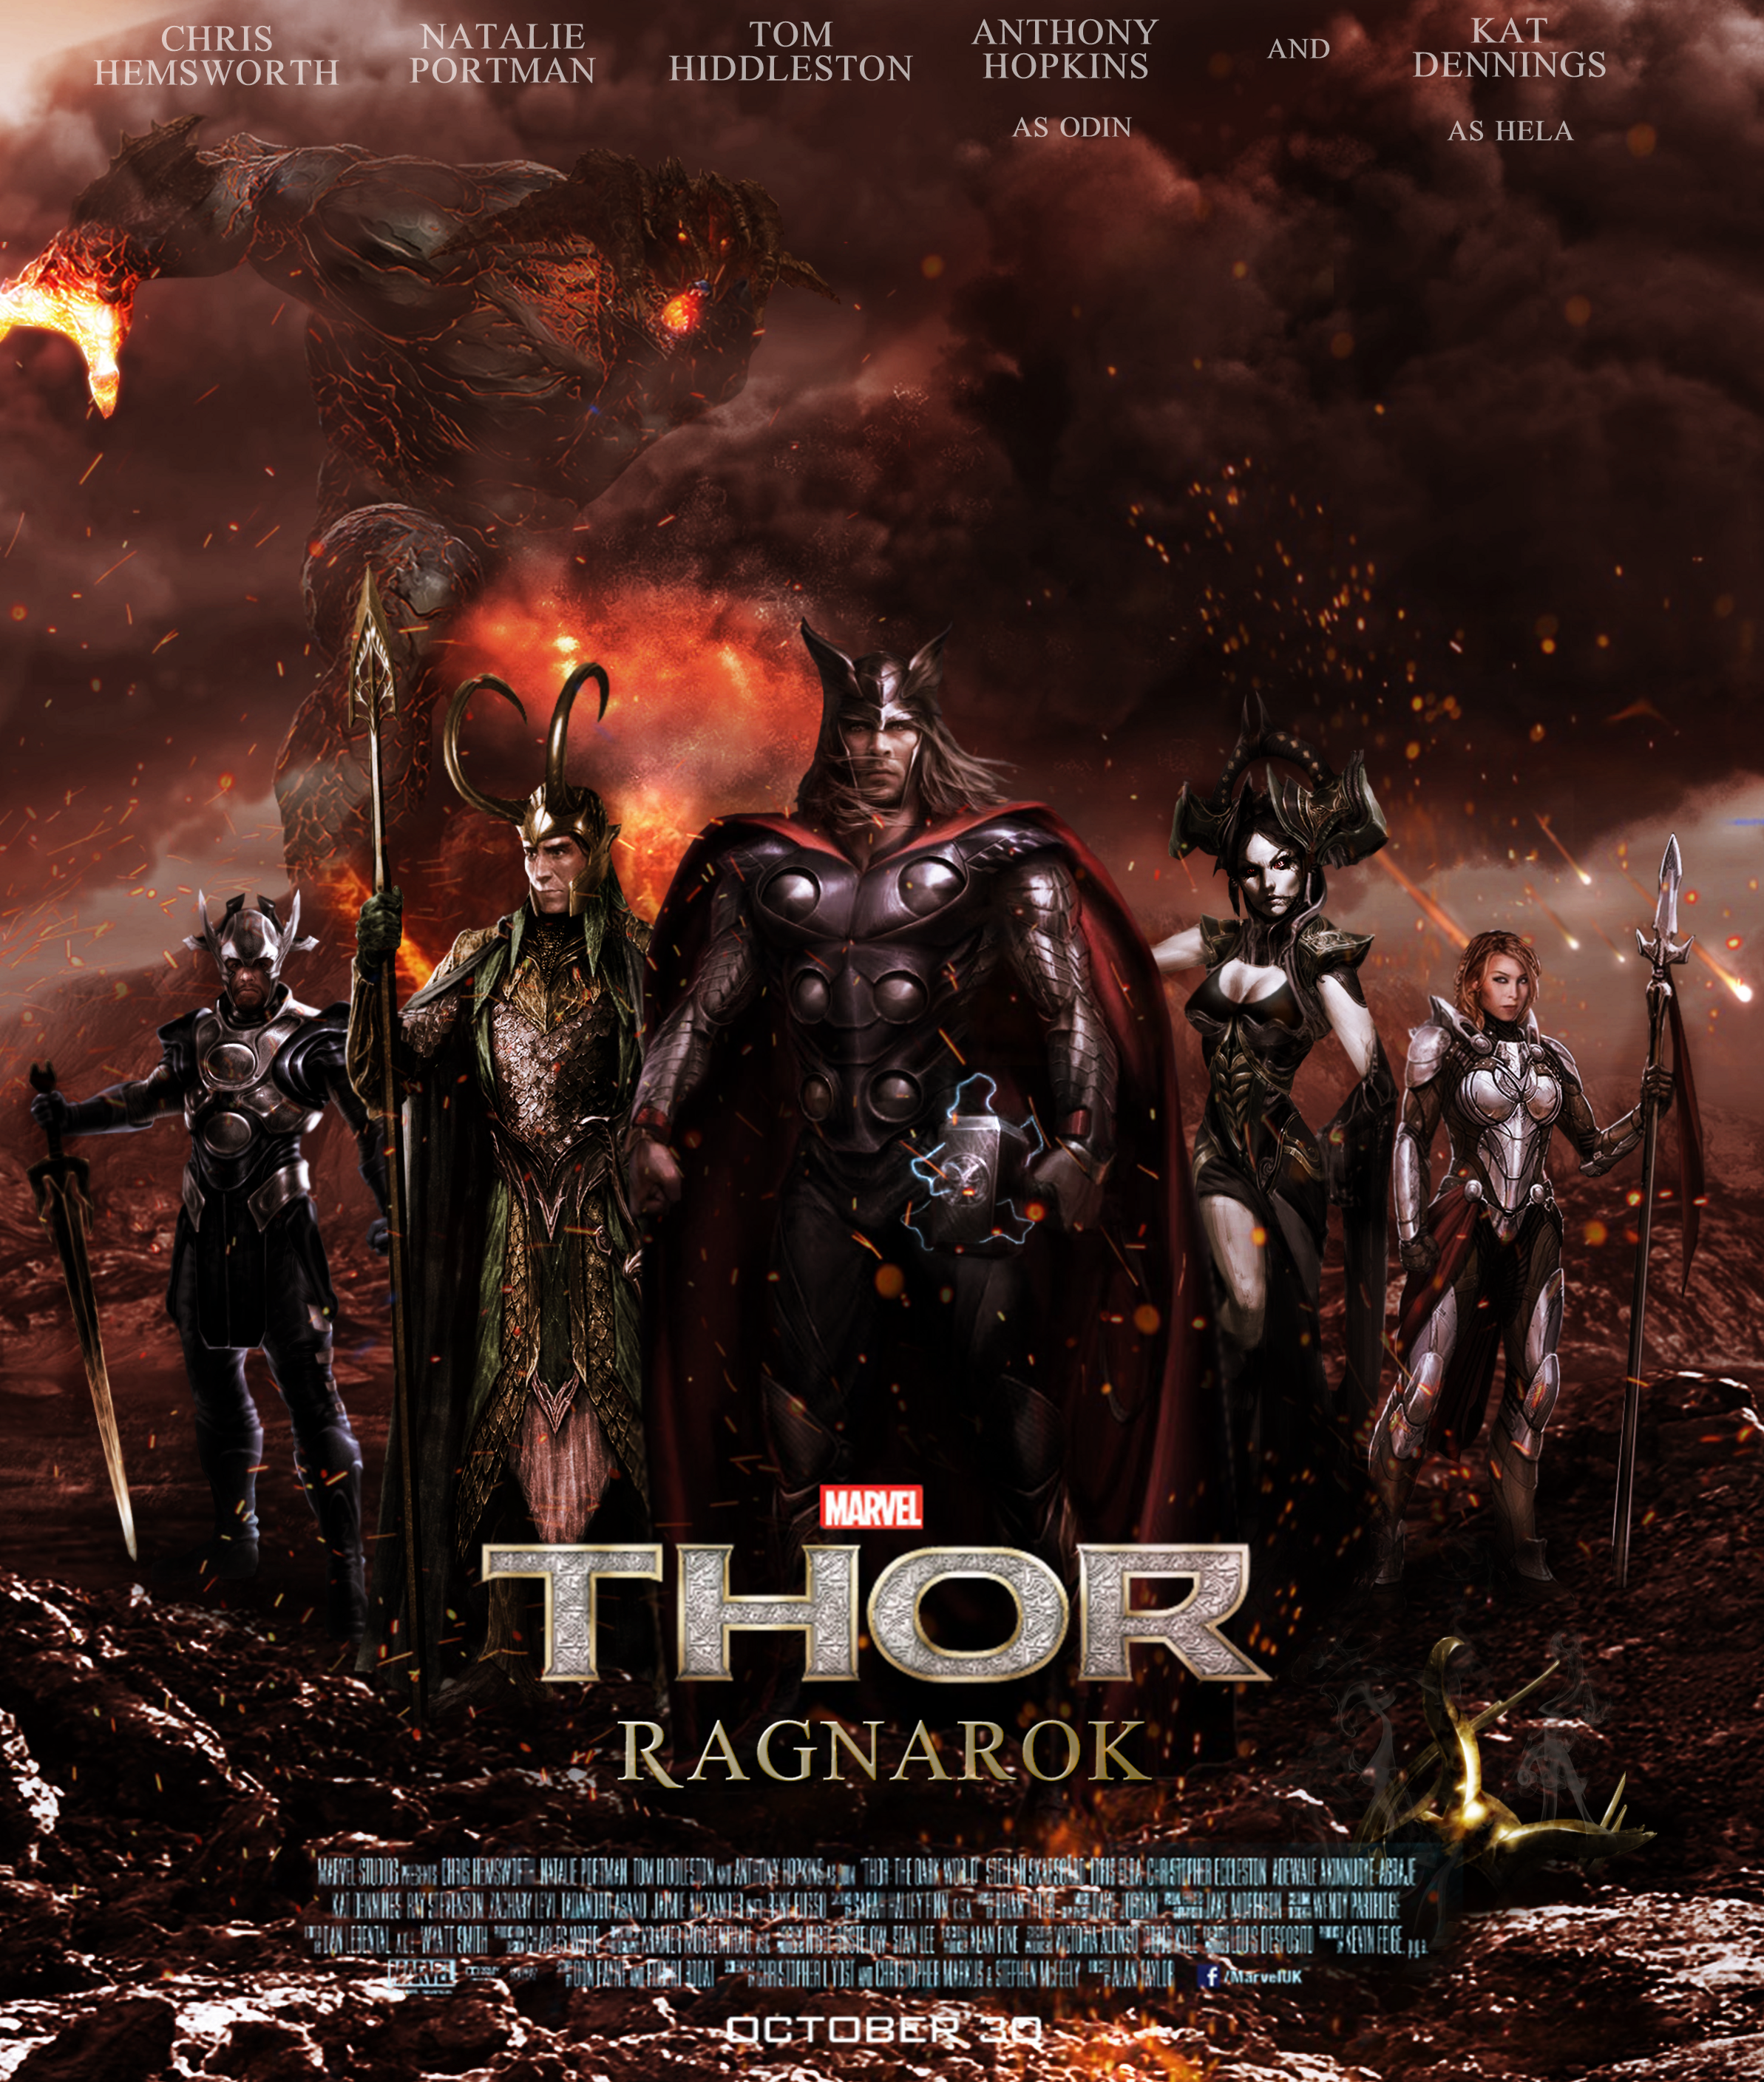 THOR: RAGNAROK fan made poster by DarthDestruktor on